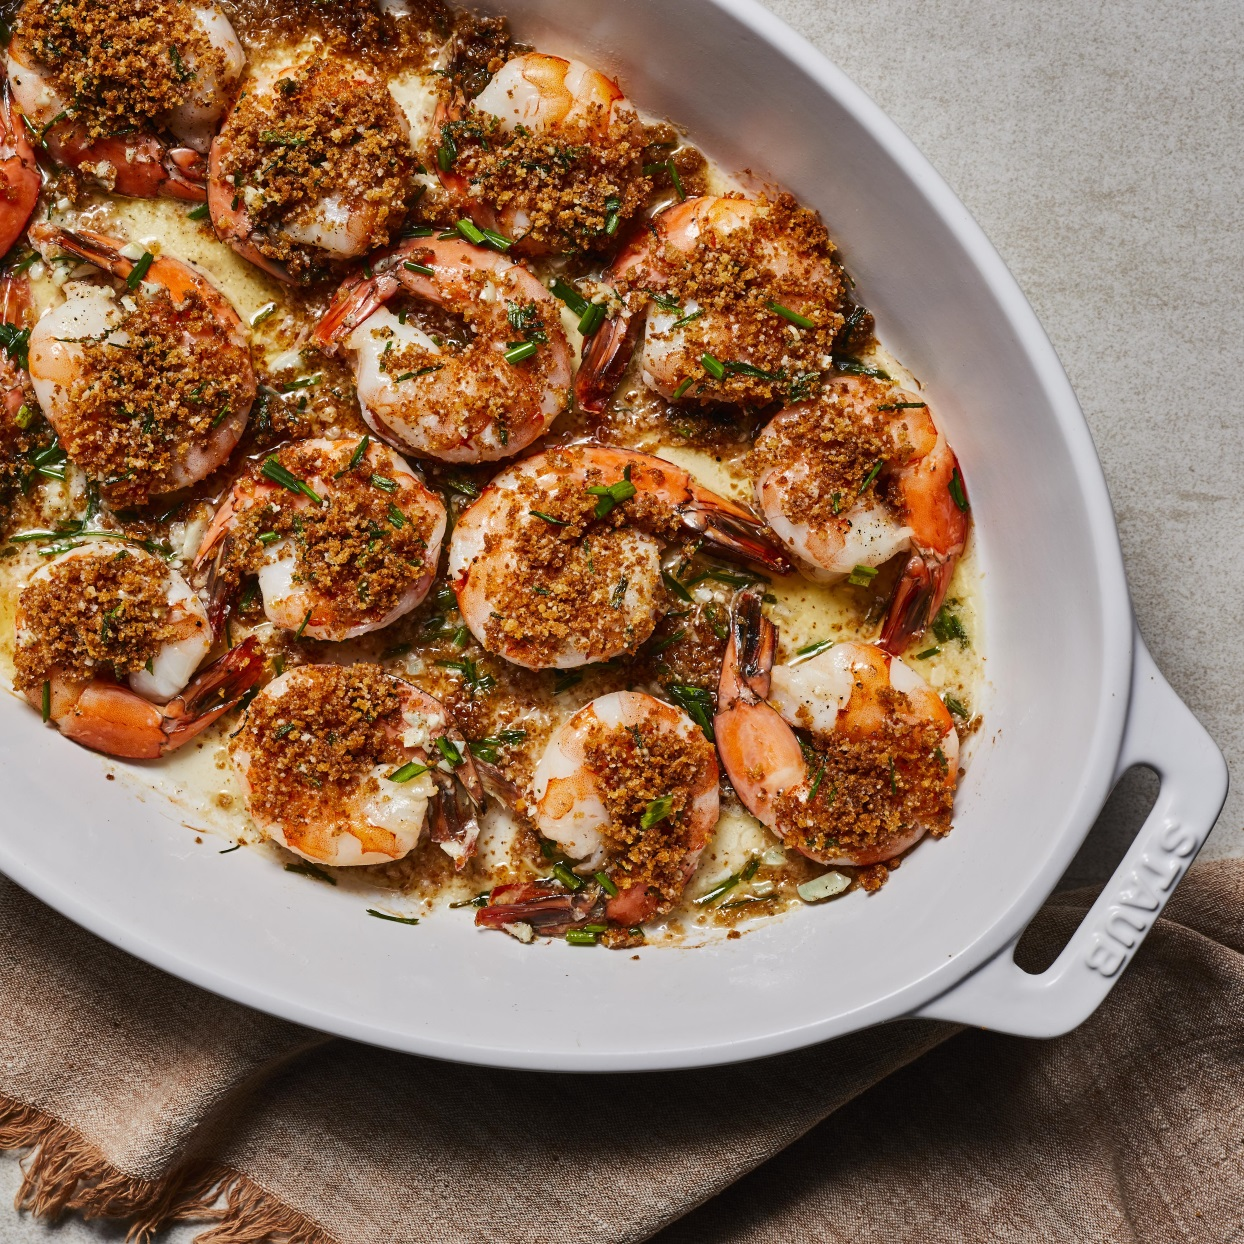 This easy baked shrimp dish is crispy, lemony, garlicky, buttery and simply delicious! Toasting the panko before topping the shrimp makes for a super-crispy topping. Serve these flavorful shrimp with over angel-hair pasta and add a green salad or a side of vegetables for a quick dinner that's simple enough for weeknights but fancy enough to serve to company. Source: EatingWell.com, December 2019